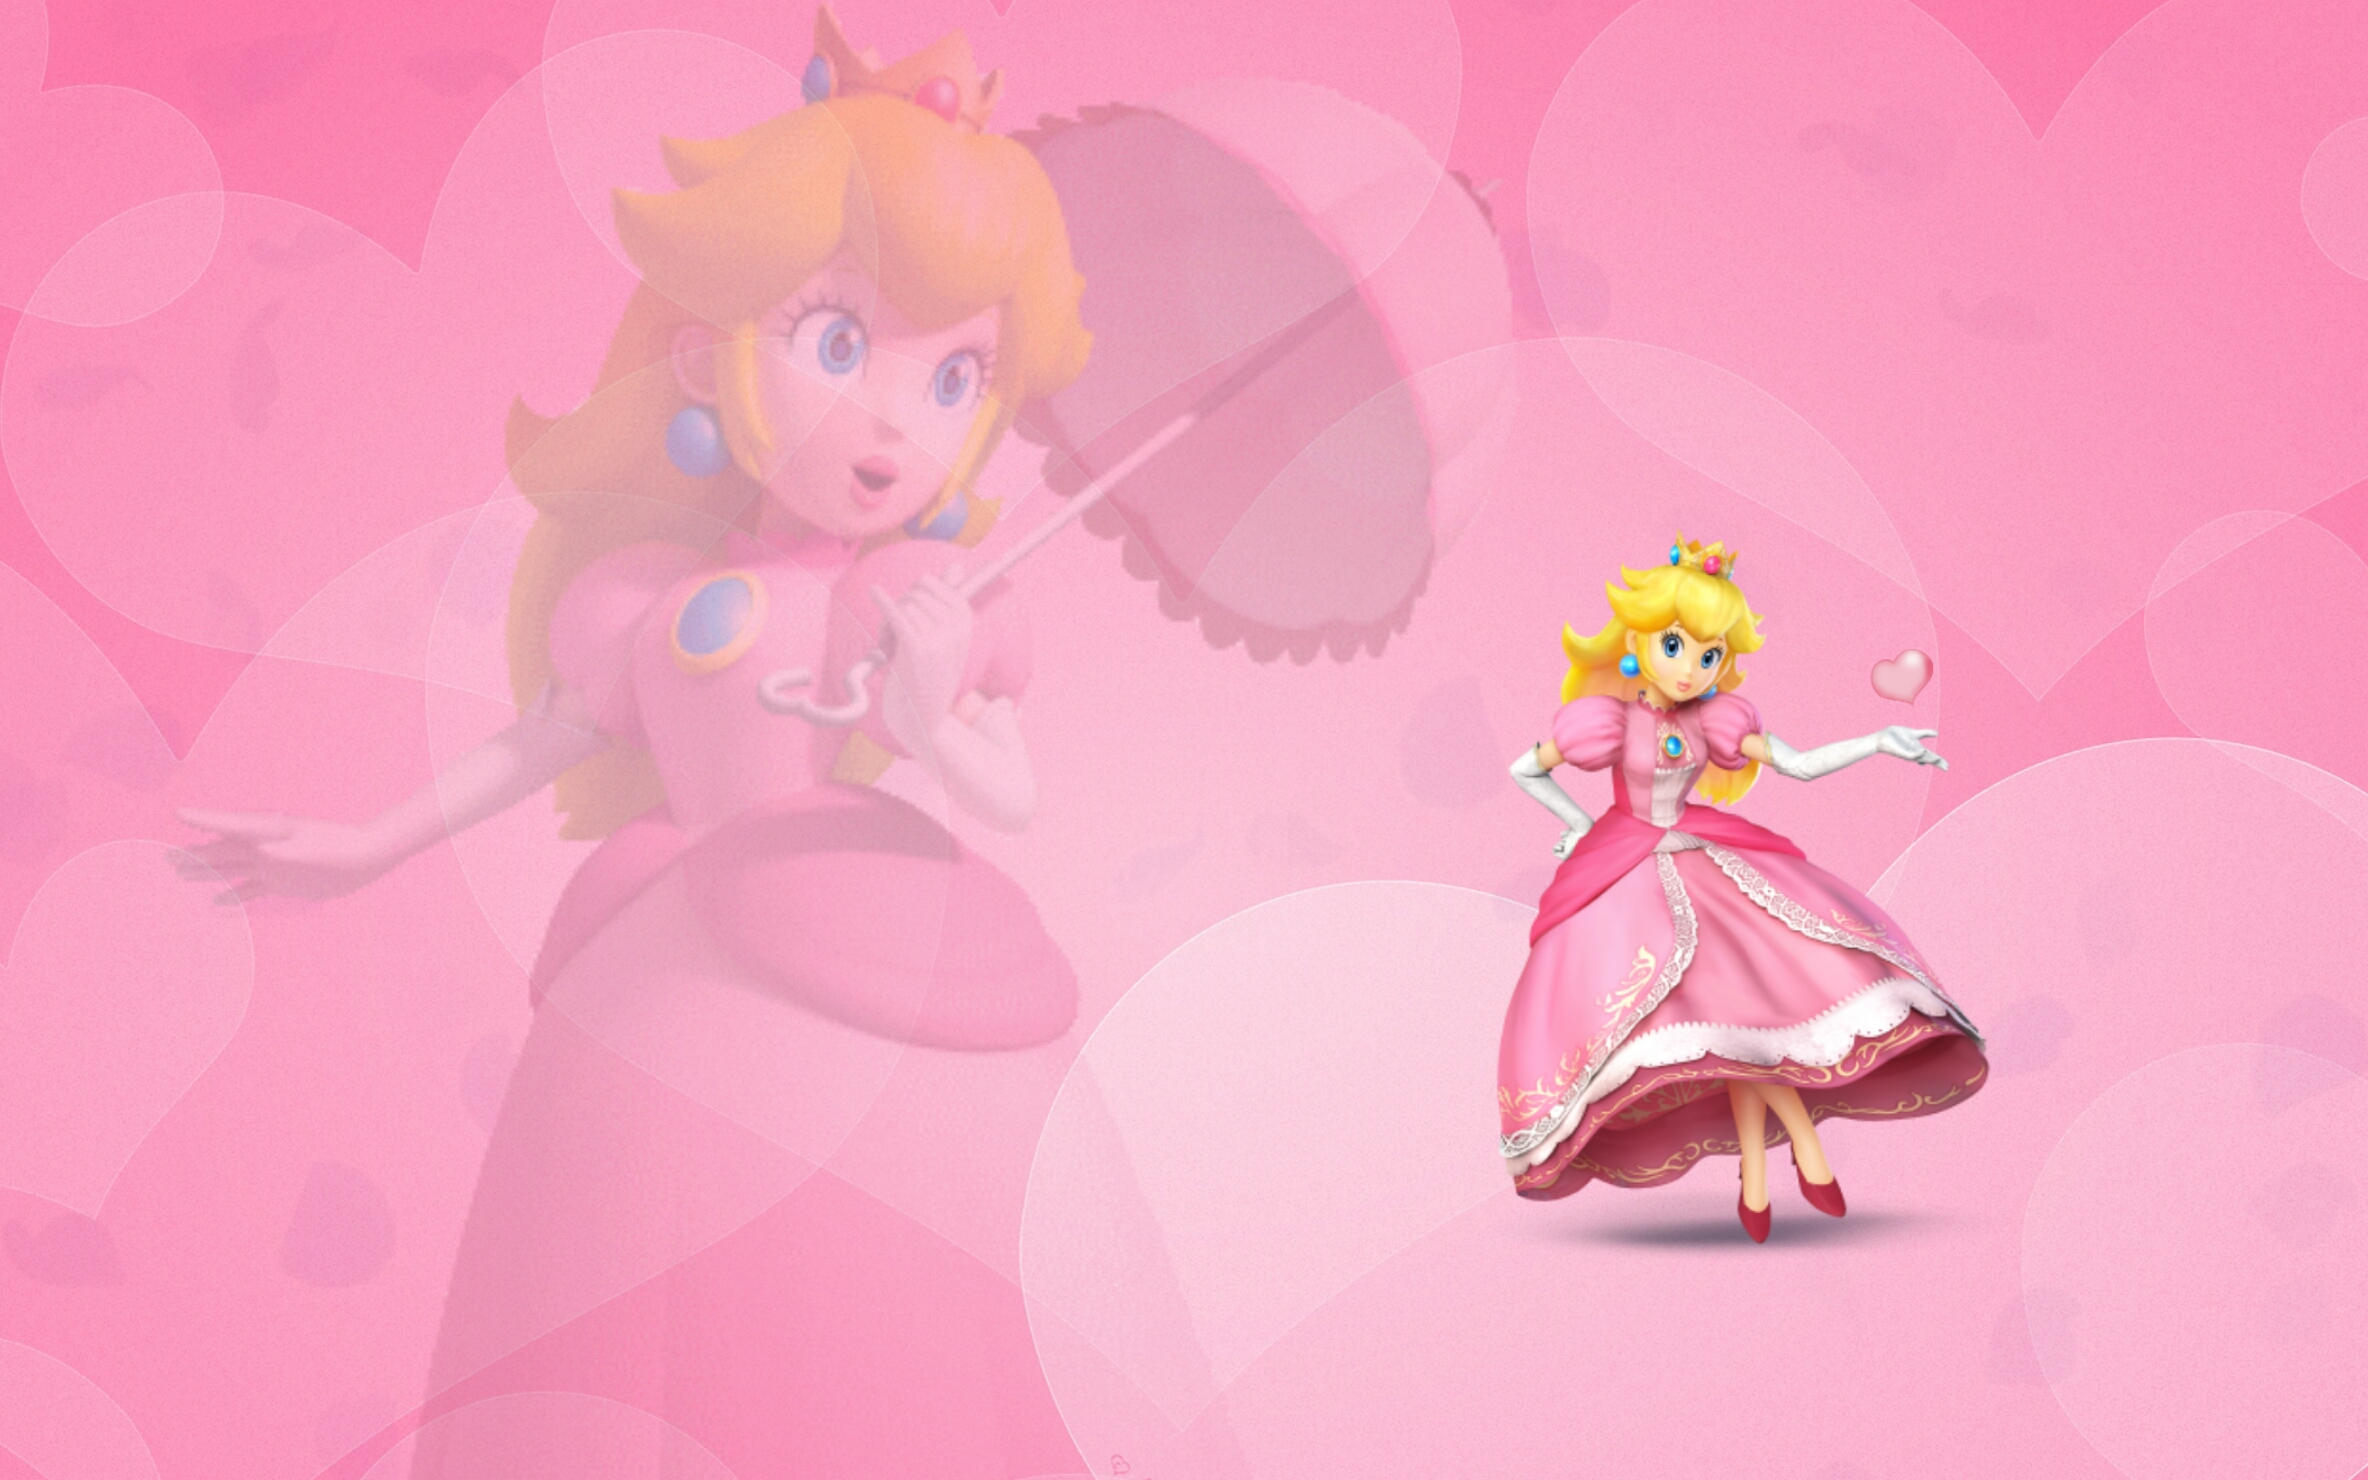 Princess Peach wallpaper by Ask  Princess  Zelda on deviantART 2368x1480